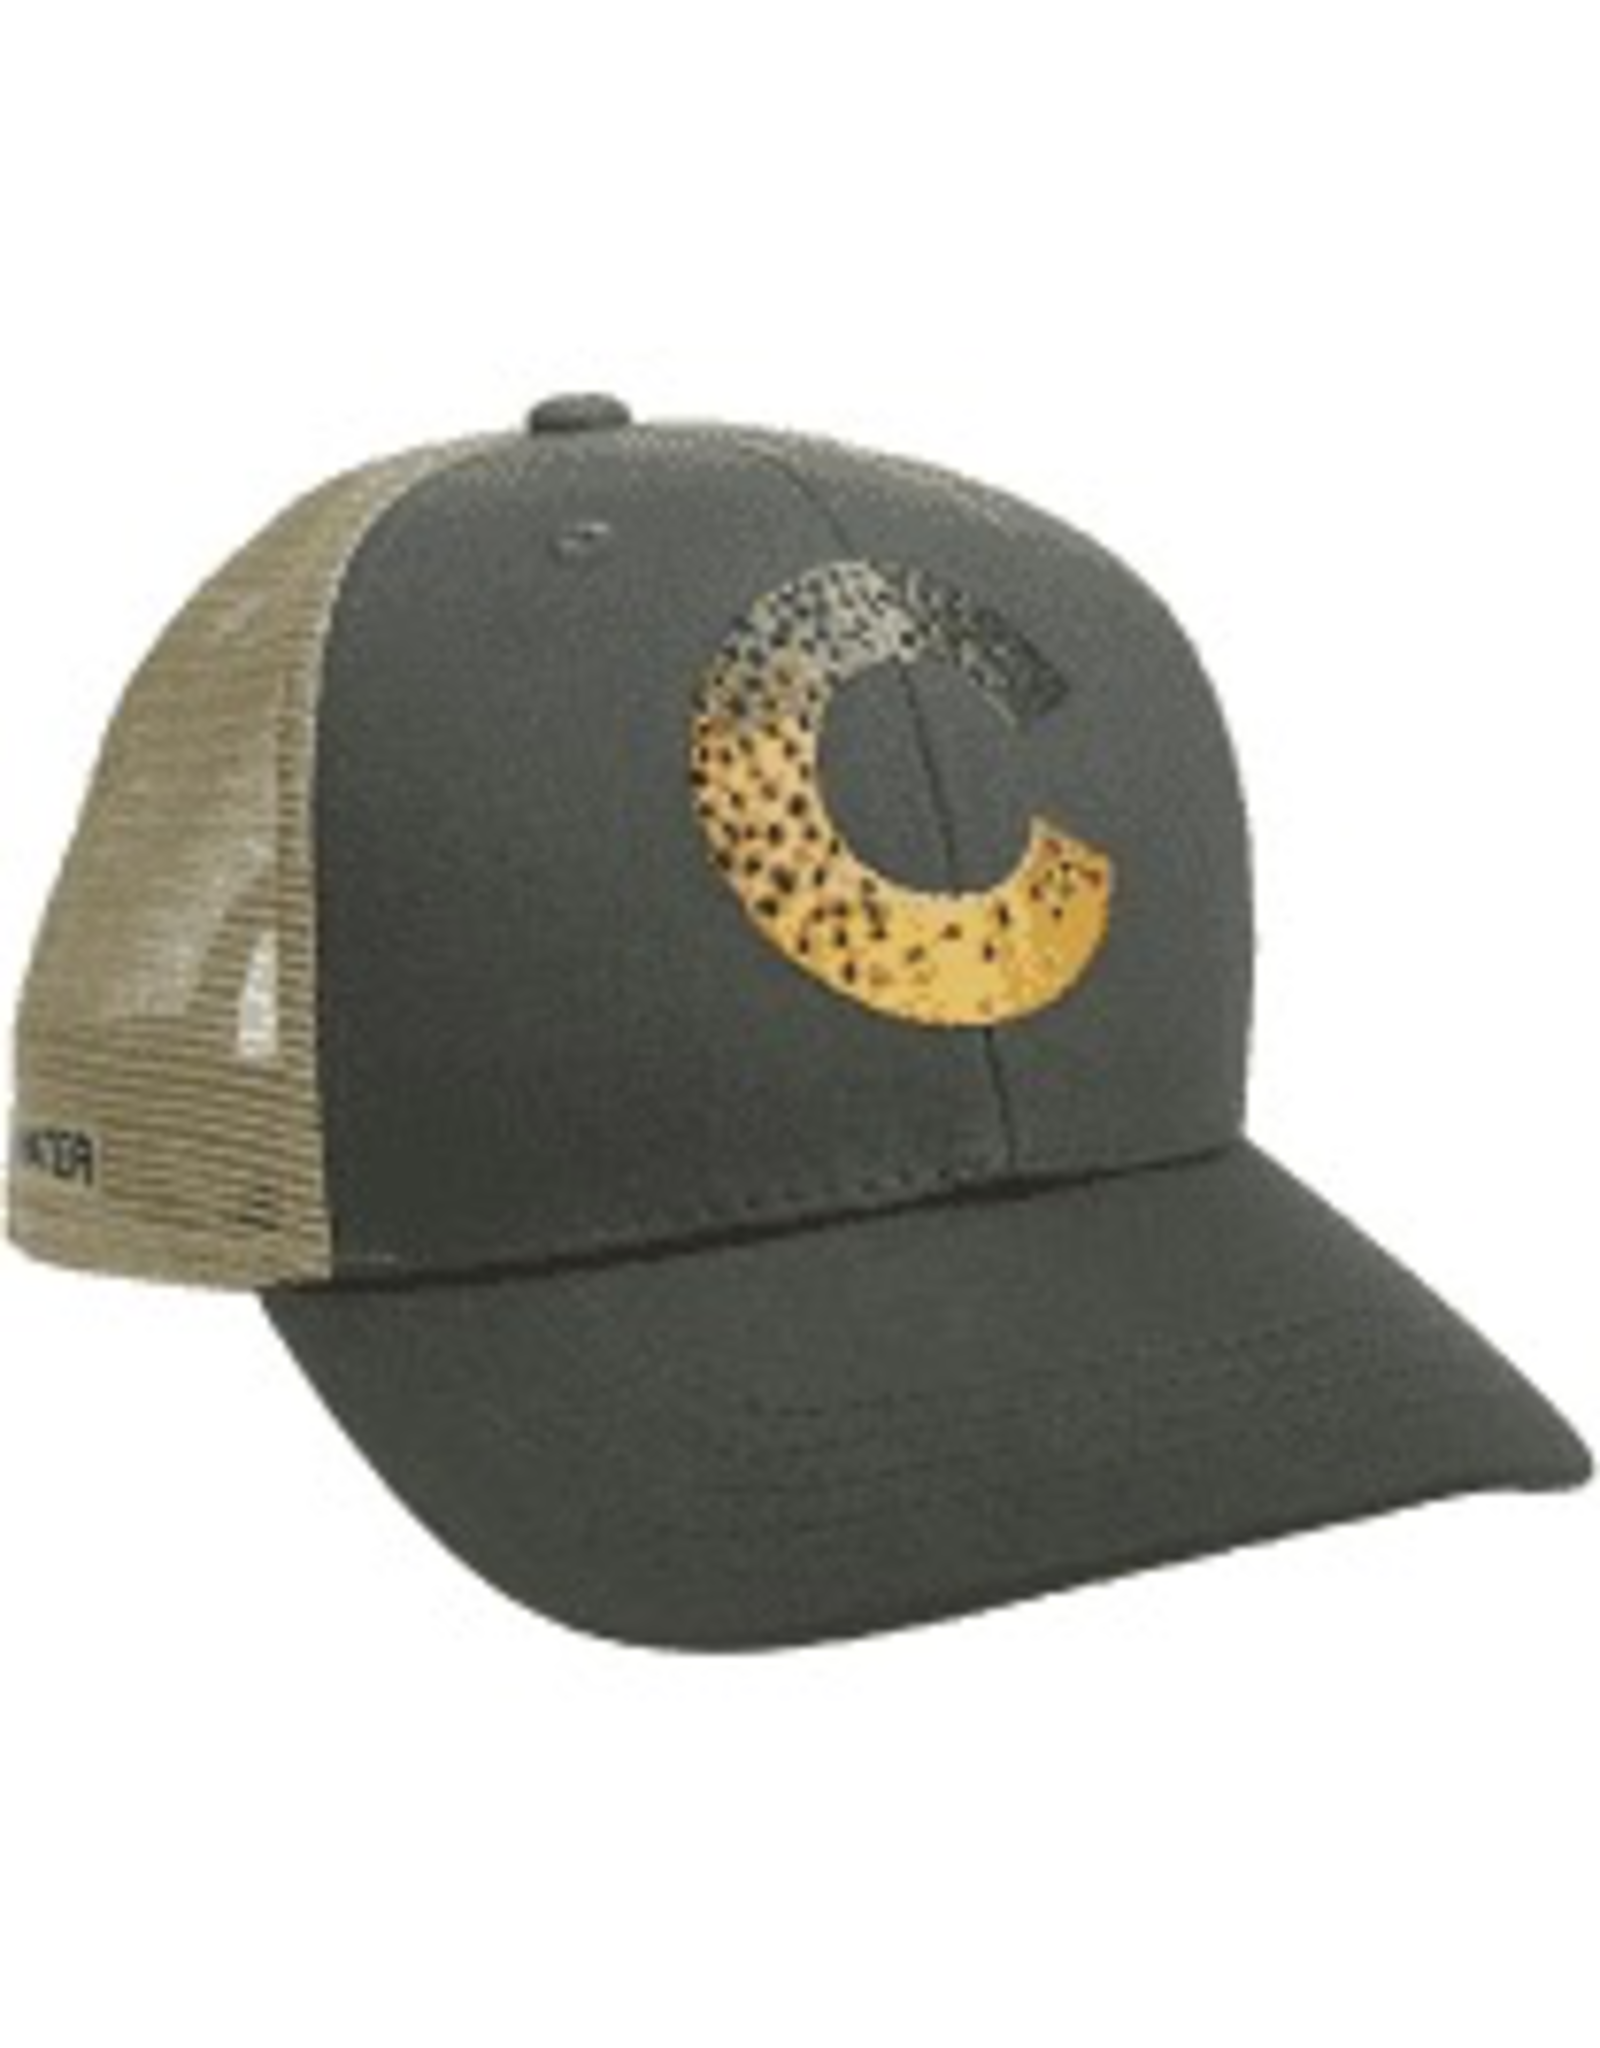 Rep Your Water Colorado Brown Trout Skin